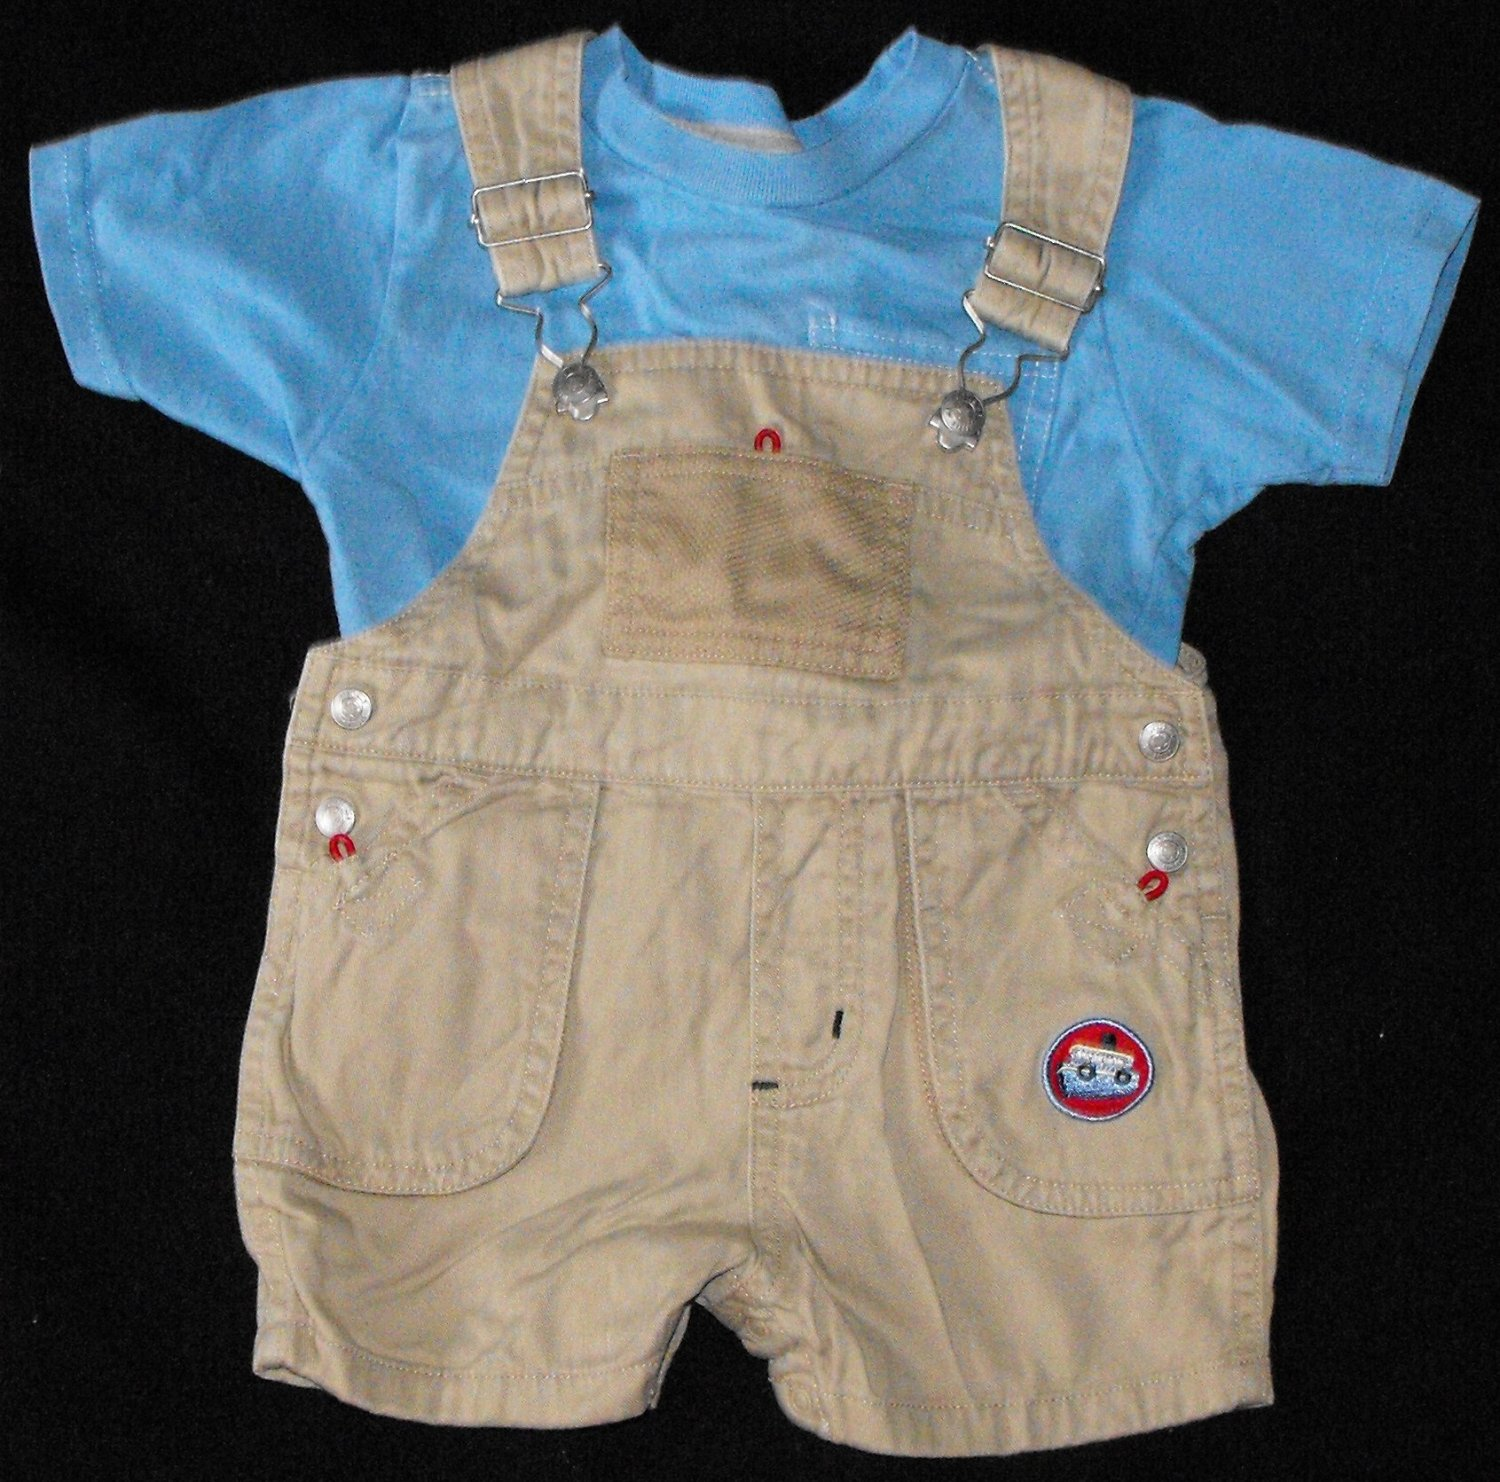 Baby Boys 12 month Little Me Shortalls Old Navy Shirt